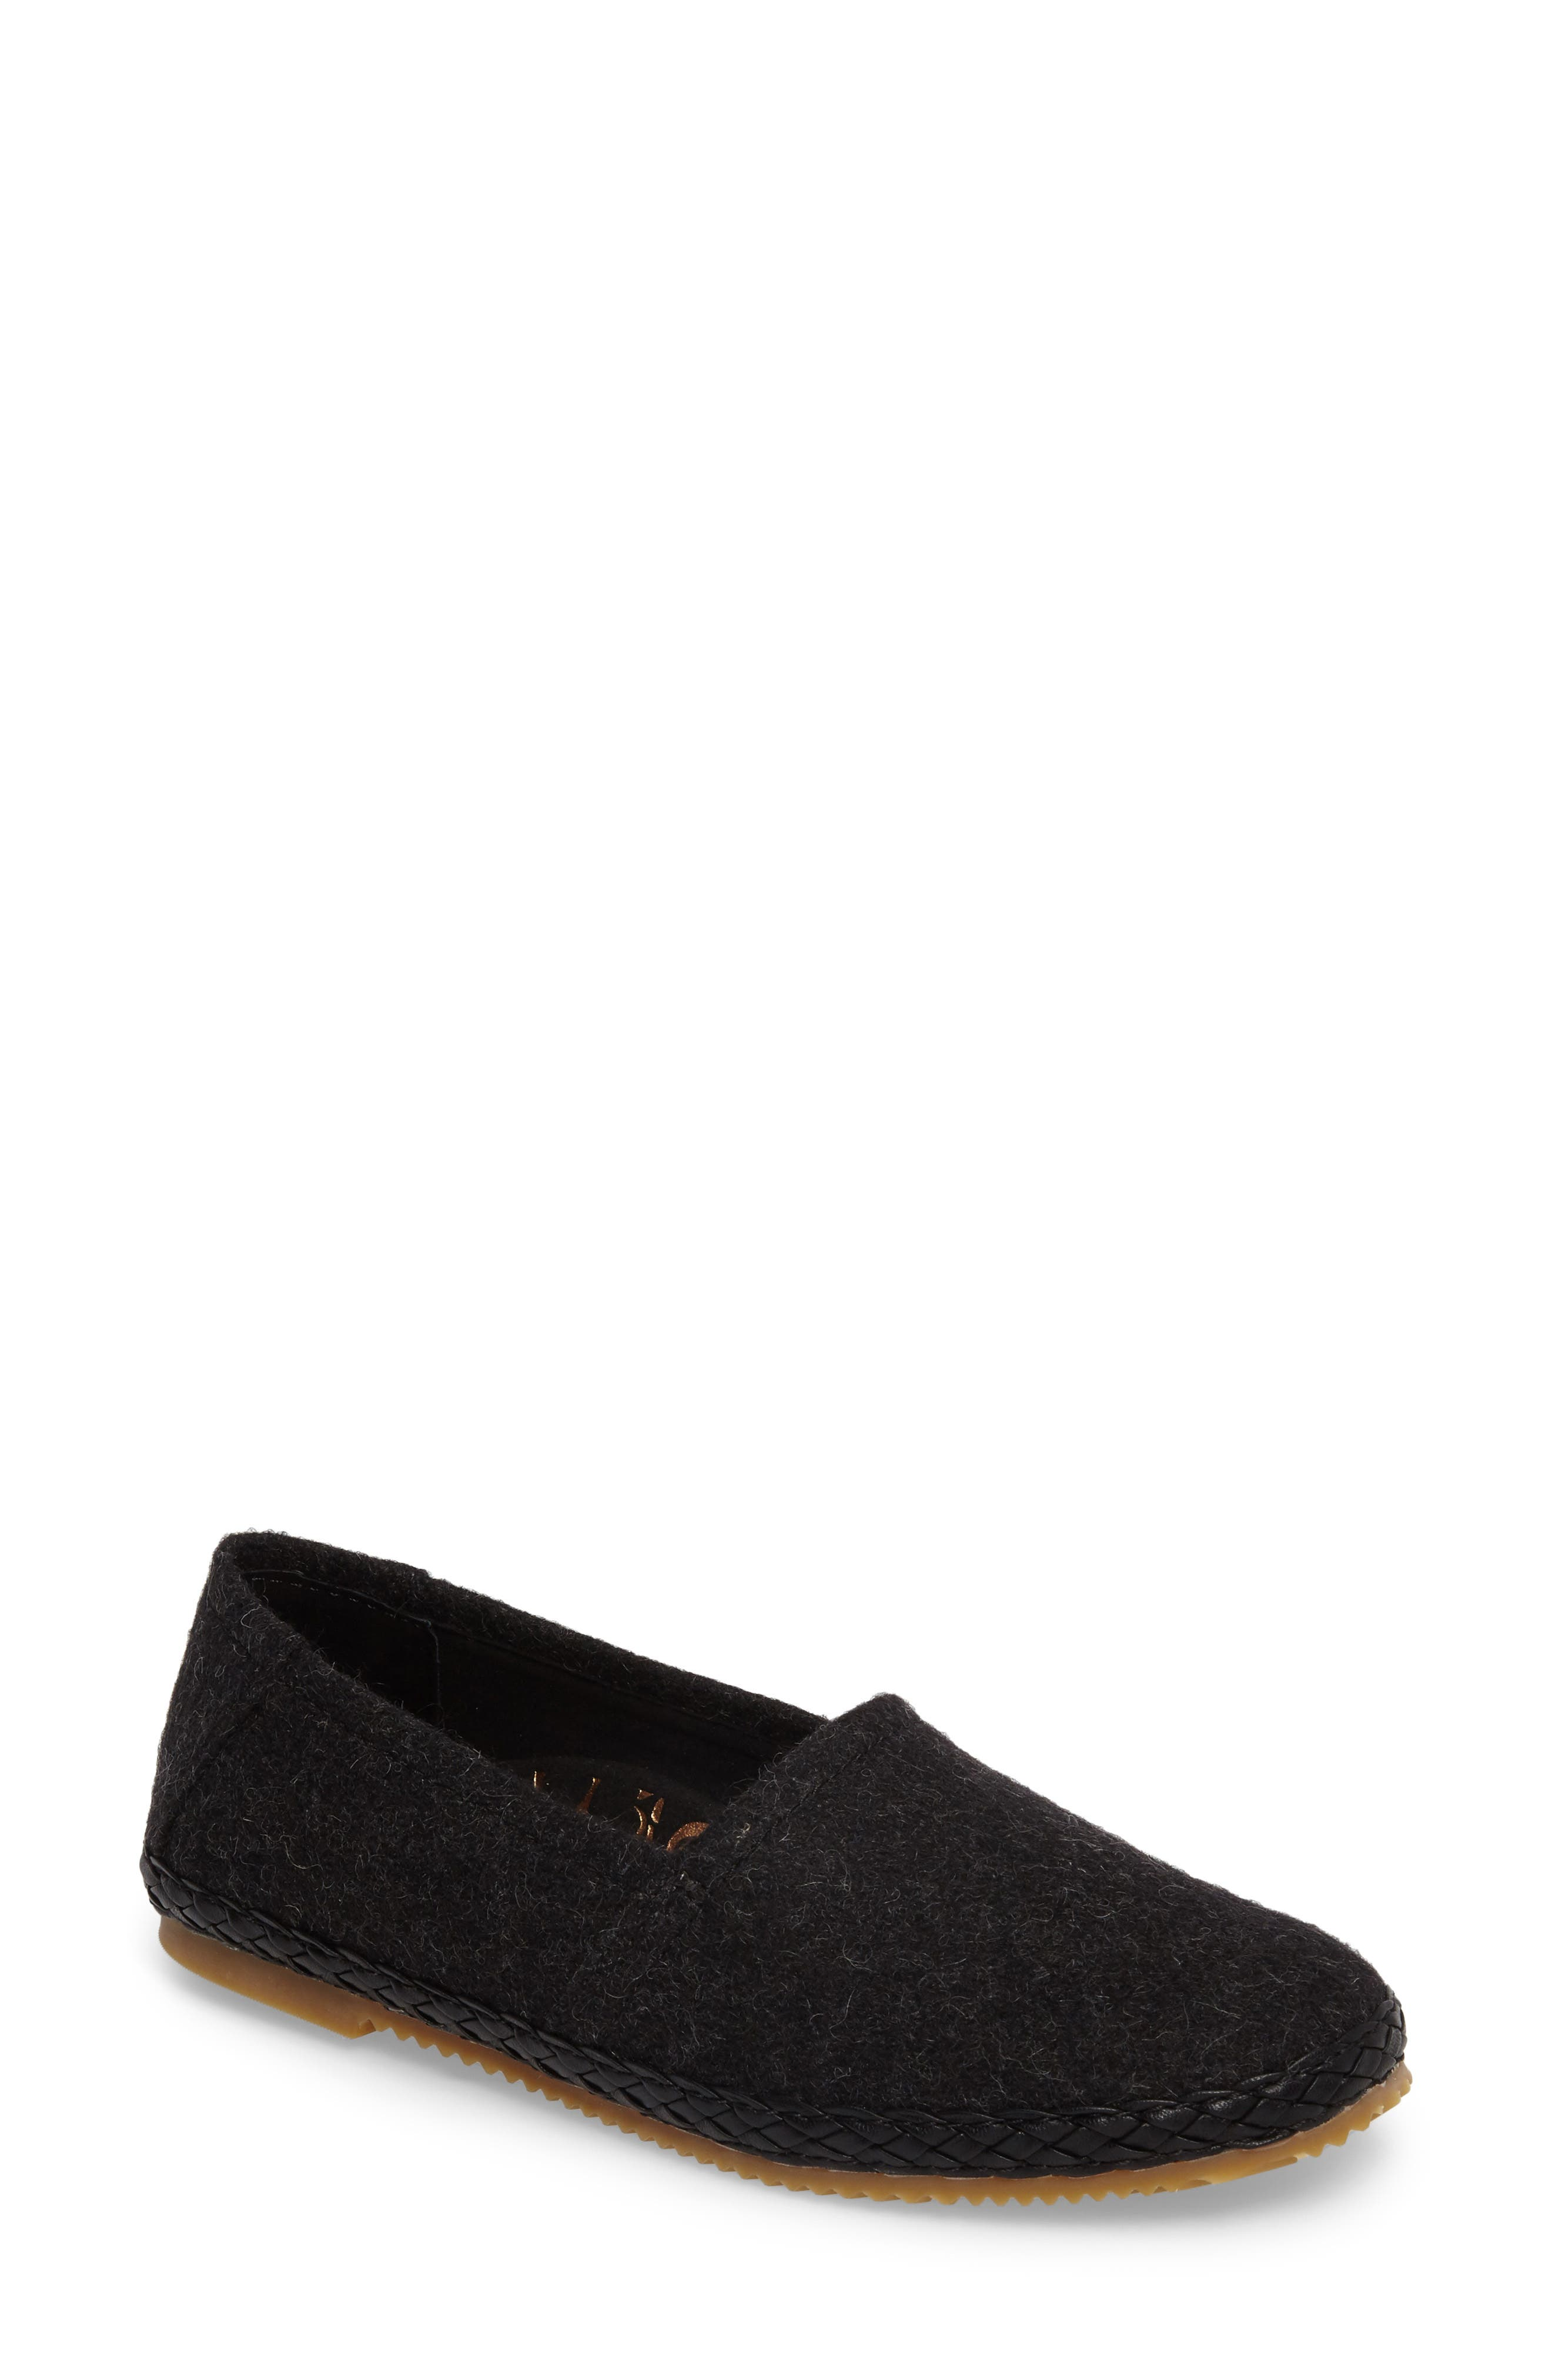 AETREX Kylie Slip-On, Main, color, BLACK FABRIC